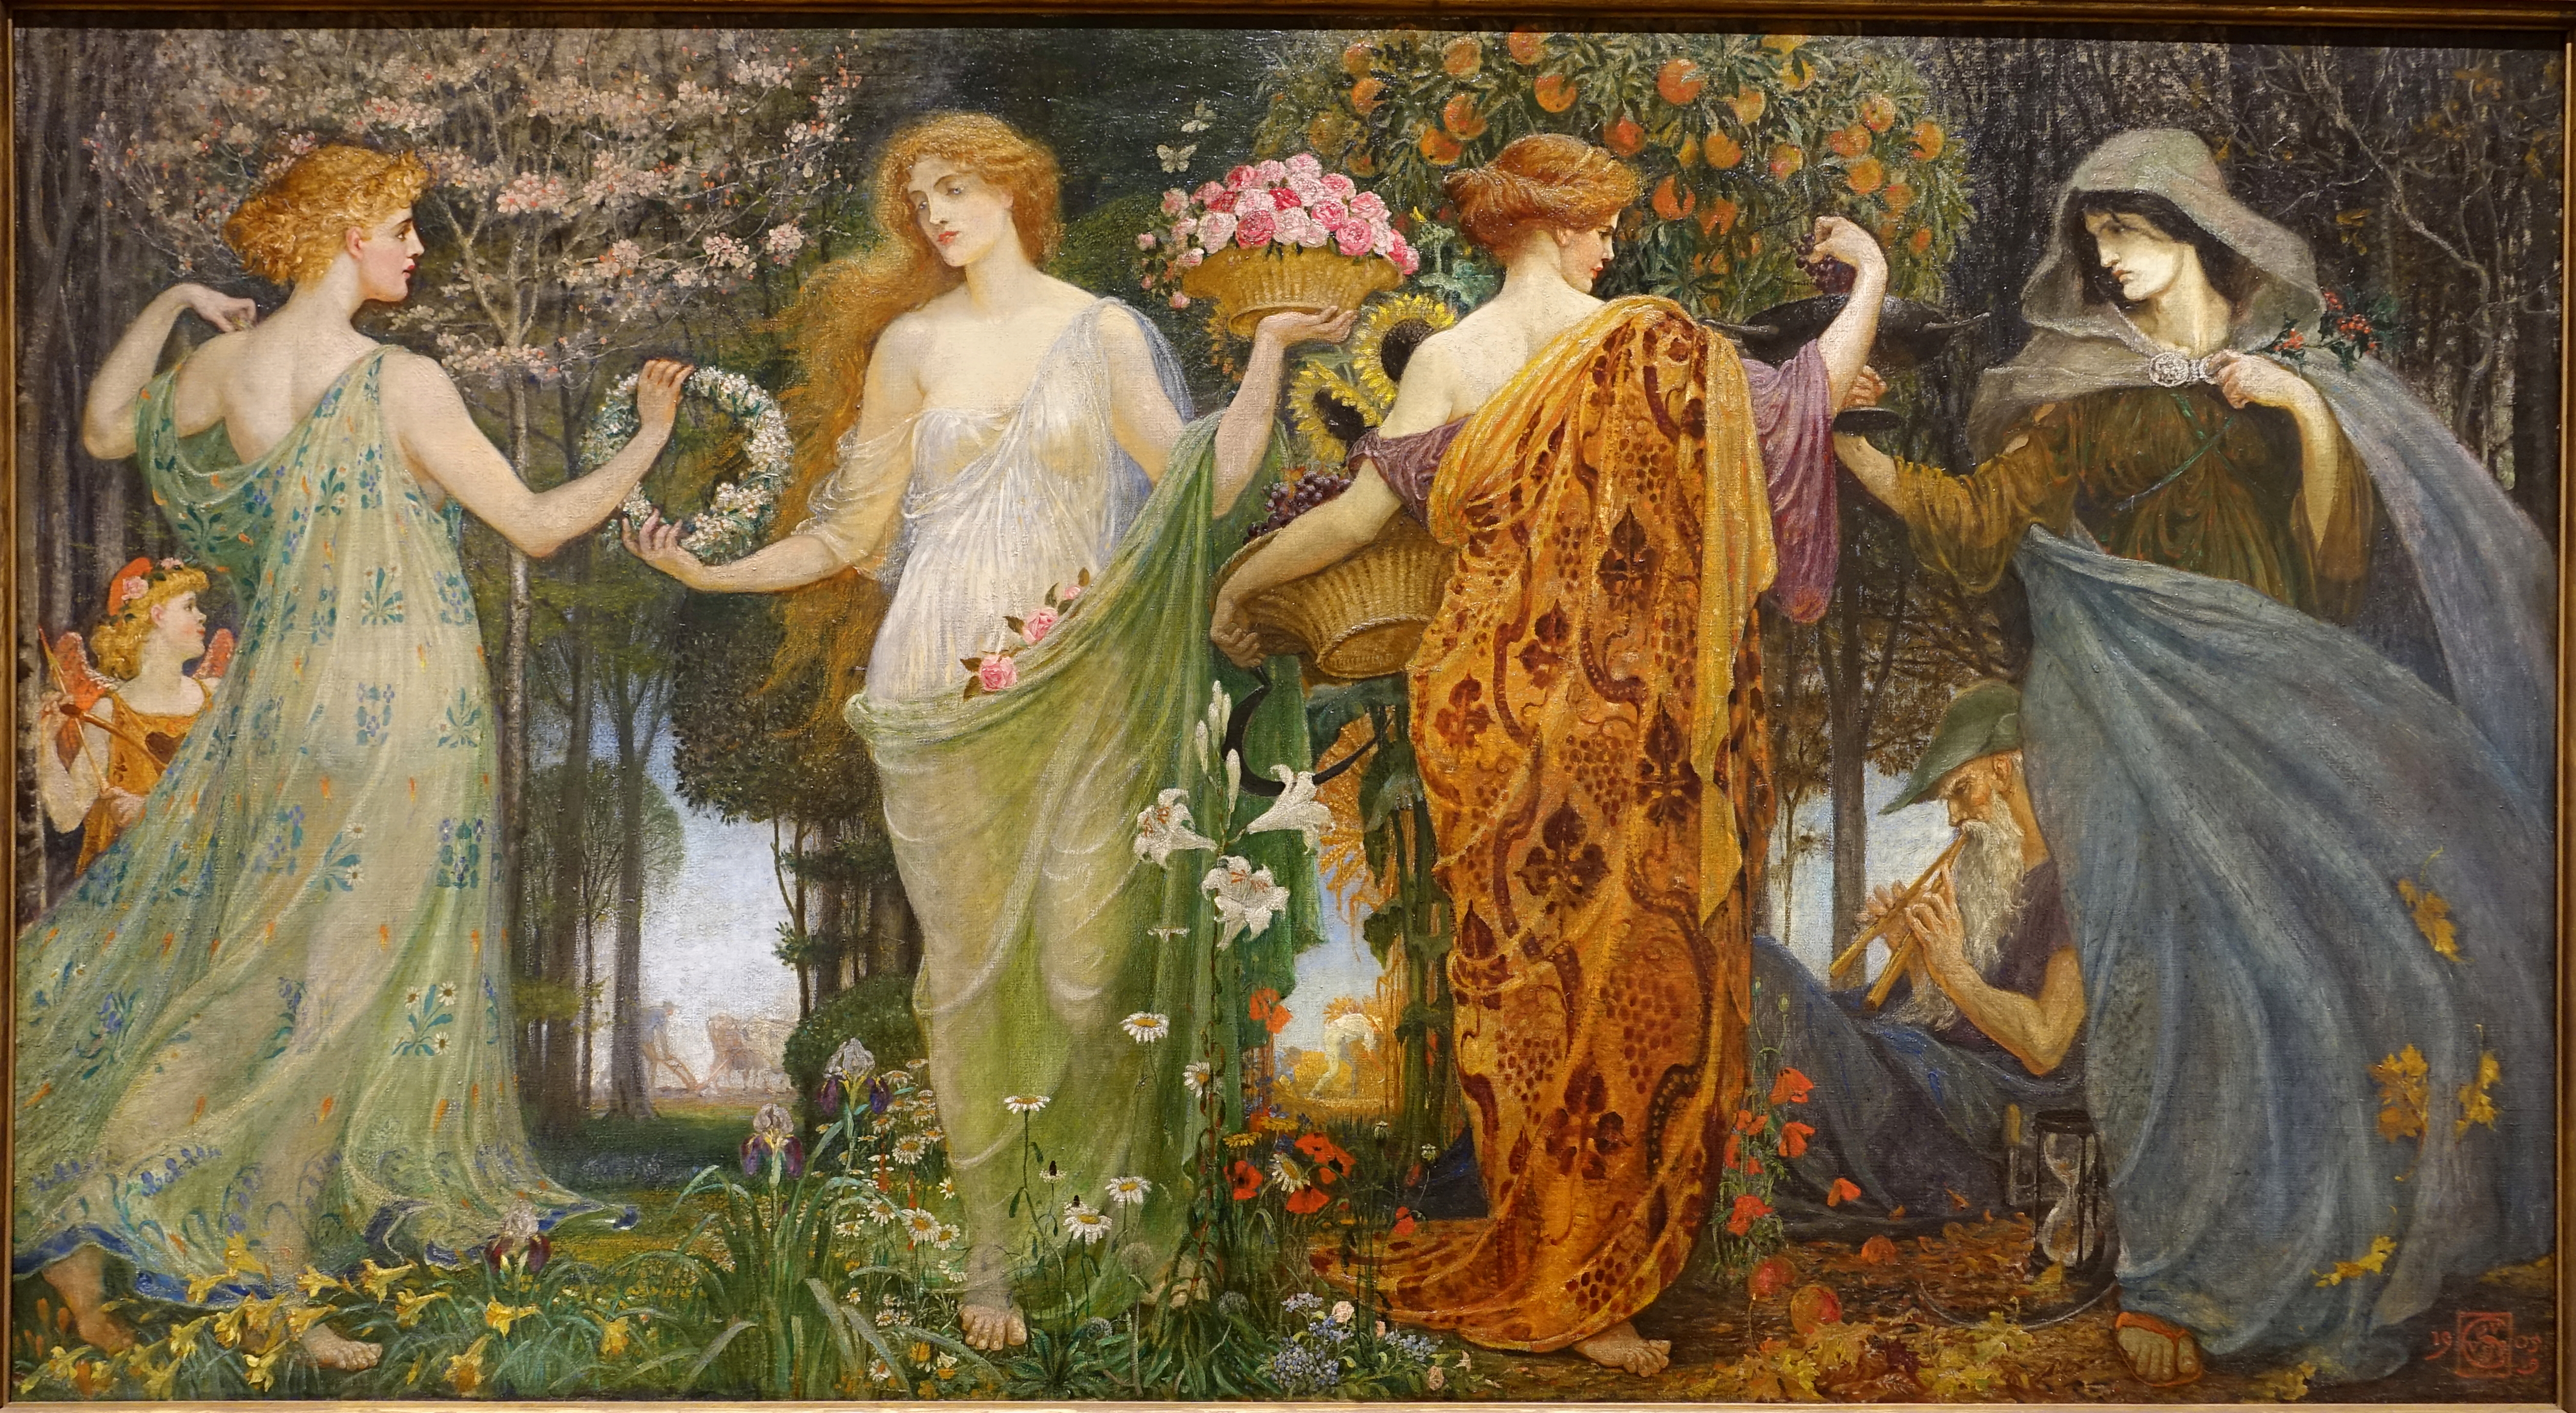 A_Masque_for_the_Four_Seasons%2C_by_Walter_Crane%2C_1905-1909%2C_oil_on_canvas_-_Hessisches_Landesmuseum_Darmstadt_-_Darmstadt%2C_Germany_-_DSC01240.jpg